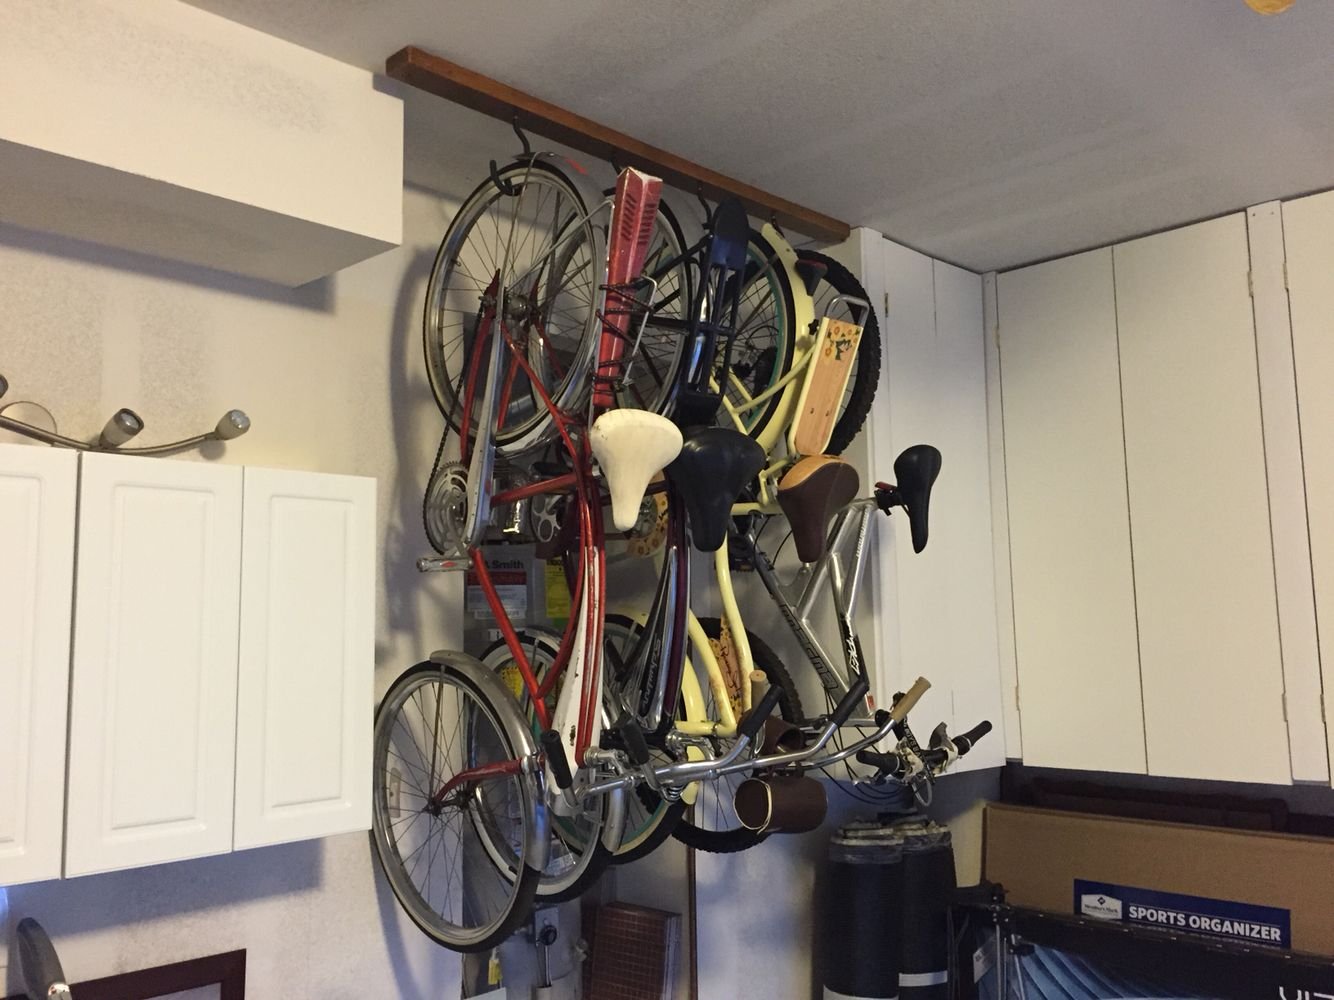 Diy Vintage Beach Cruiser Bike Rack 5ft 2x4 Stain 4 Bike Hooks And Screwed On To The 2x4 In The Ceiling Bike Storage Diy Vintage Bike Hooks